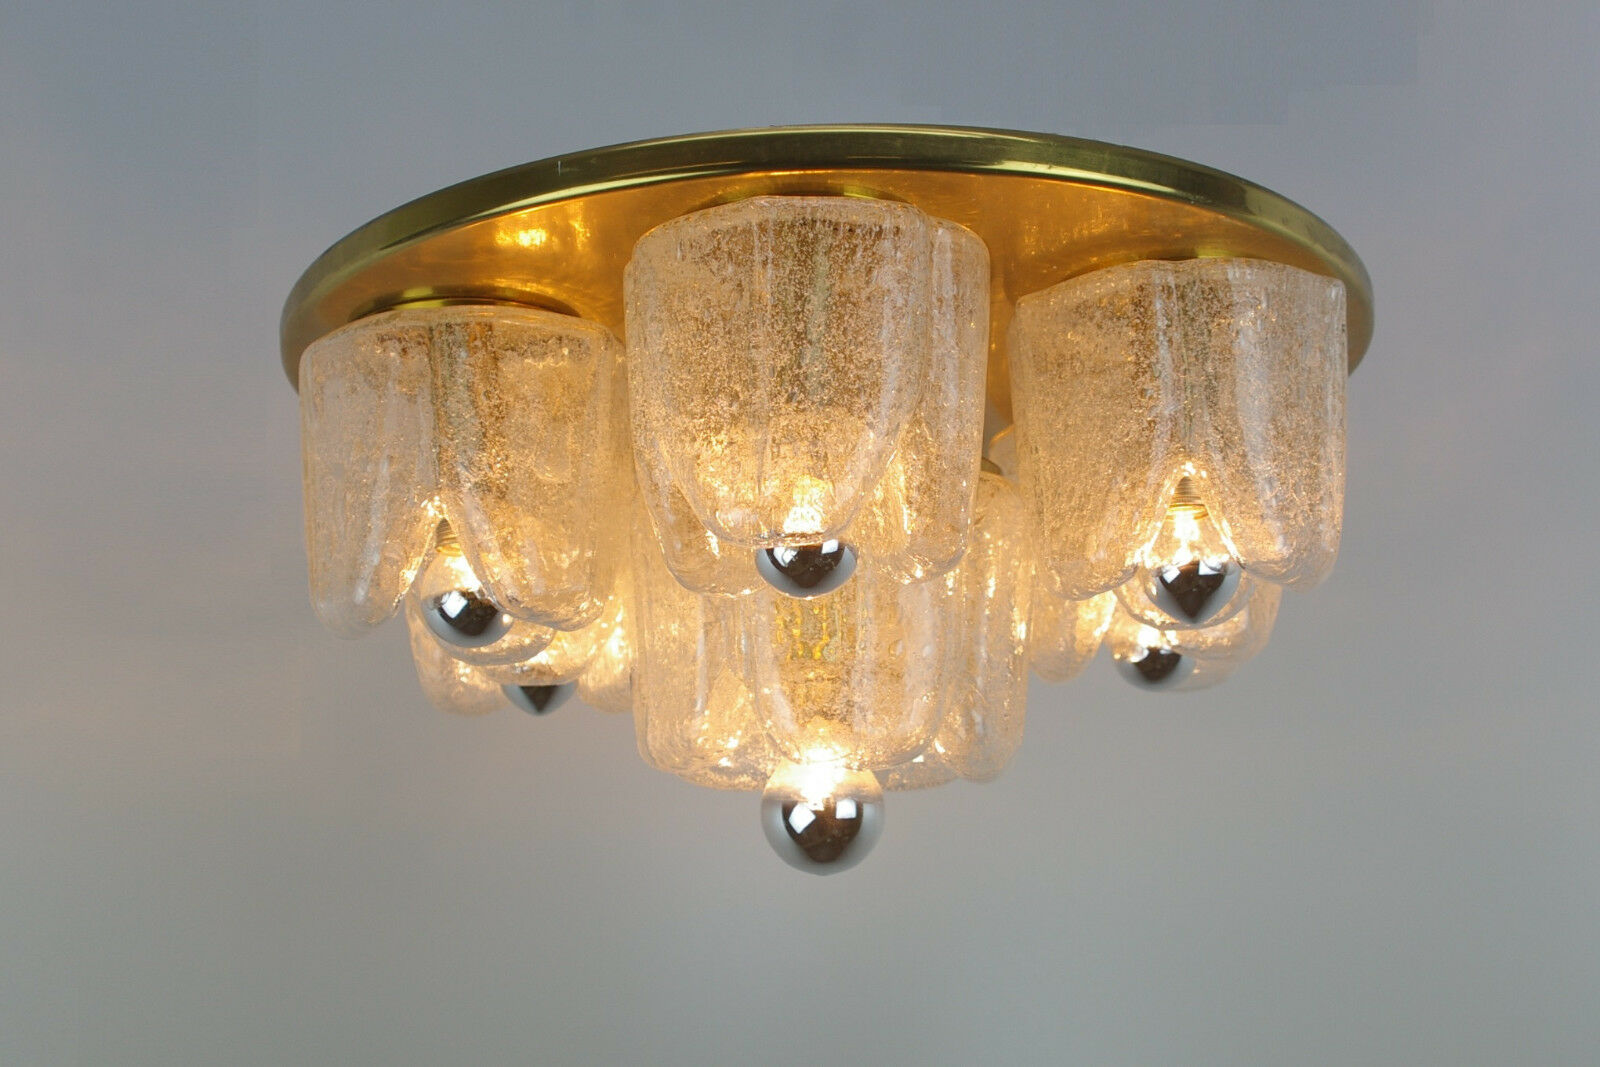 X- Large Flush Mount Ceiling Light by DORIA - Germany, Heavy Ice-Glass   Brass